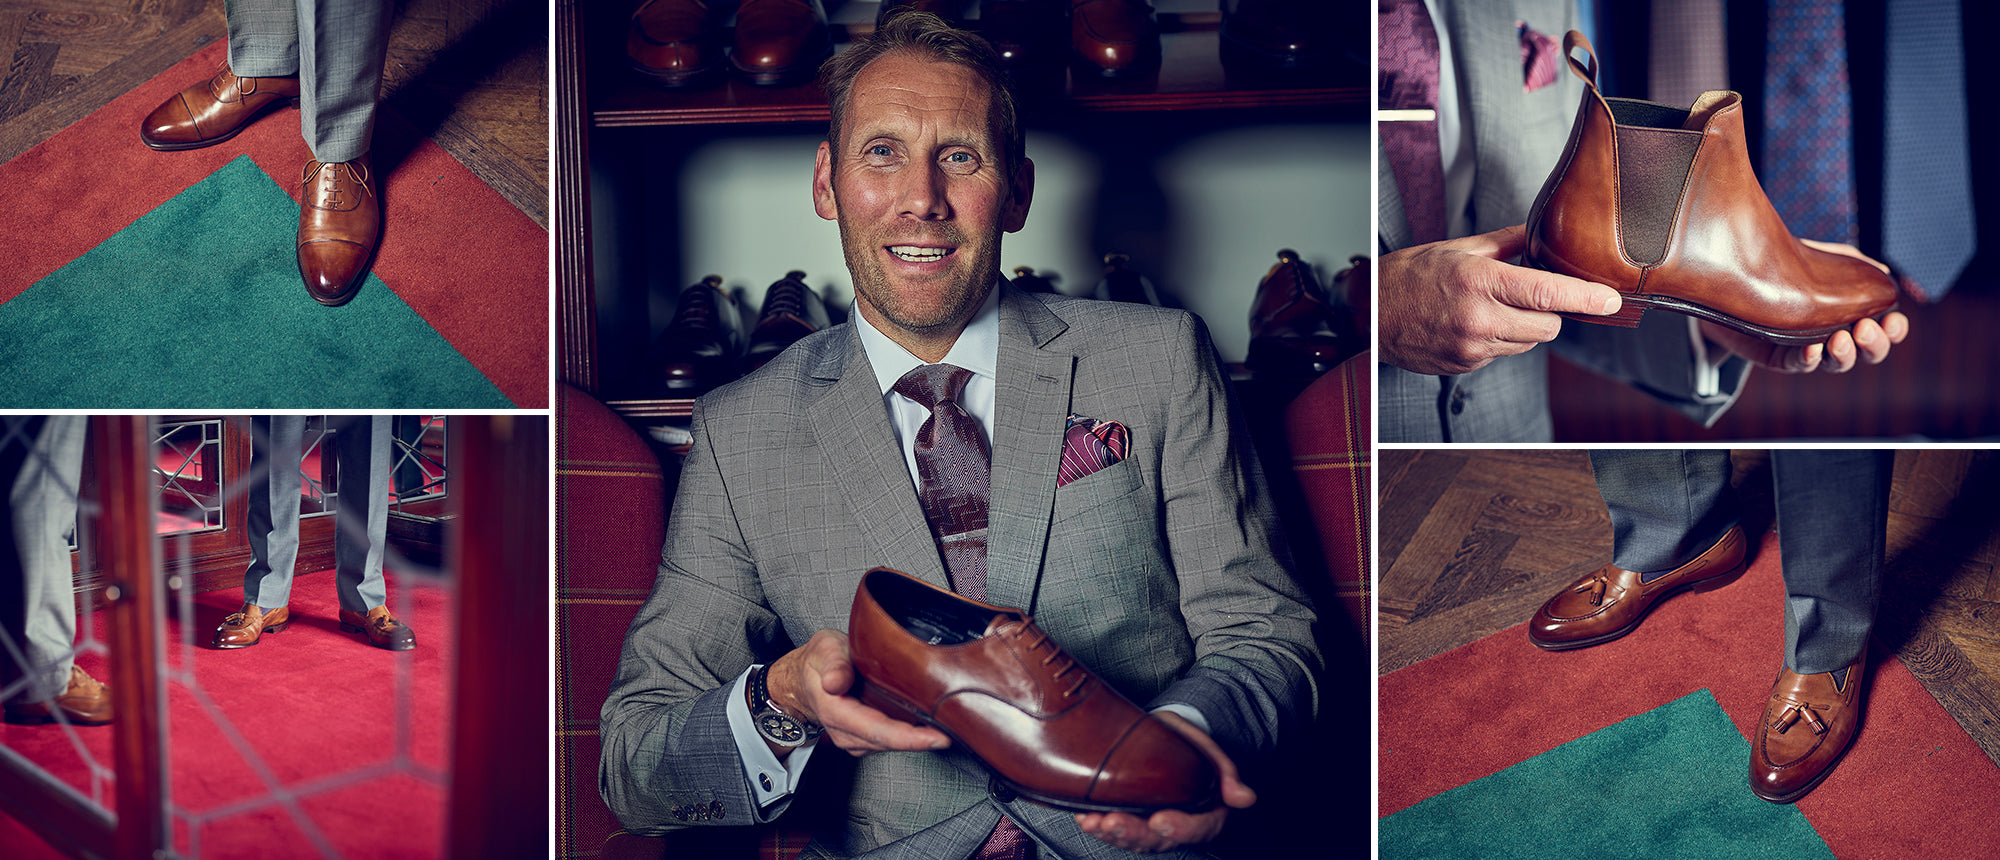 Crockett & Jones - 20 Years on Jermyn Street - Steve Murdoch